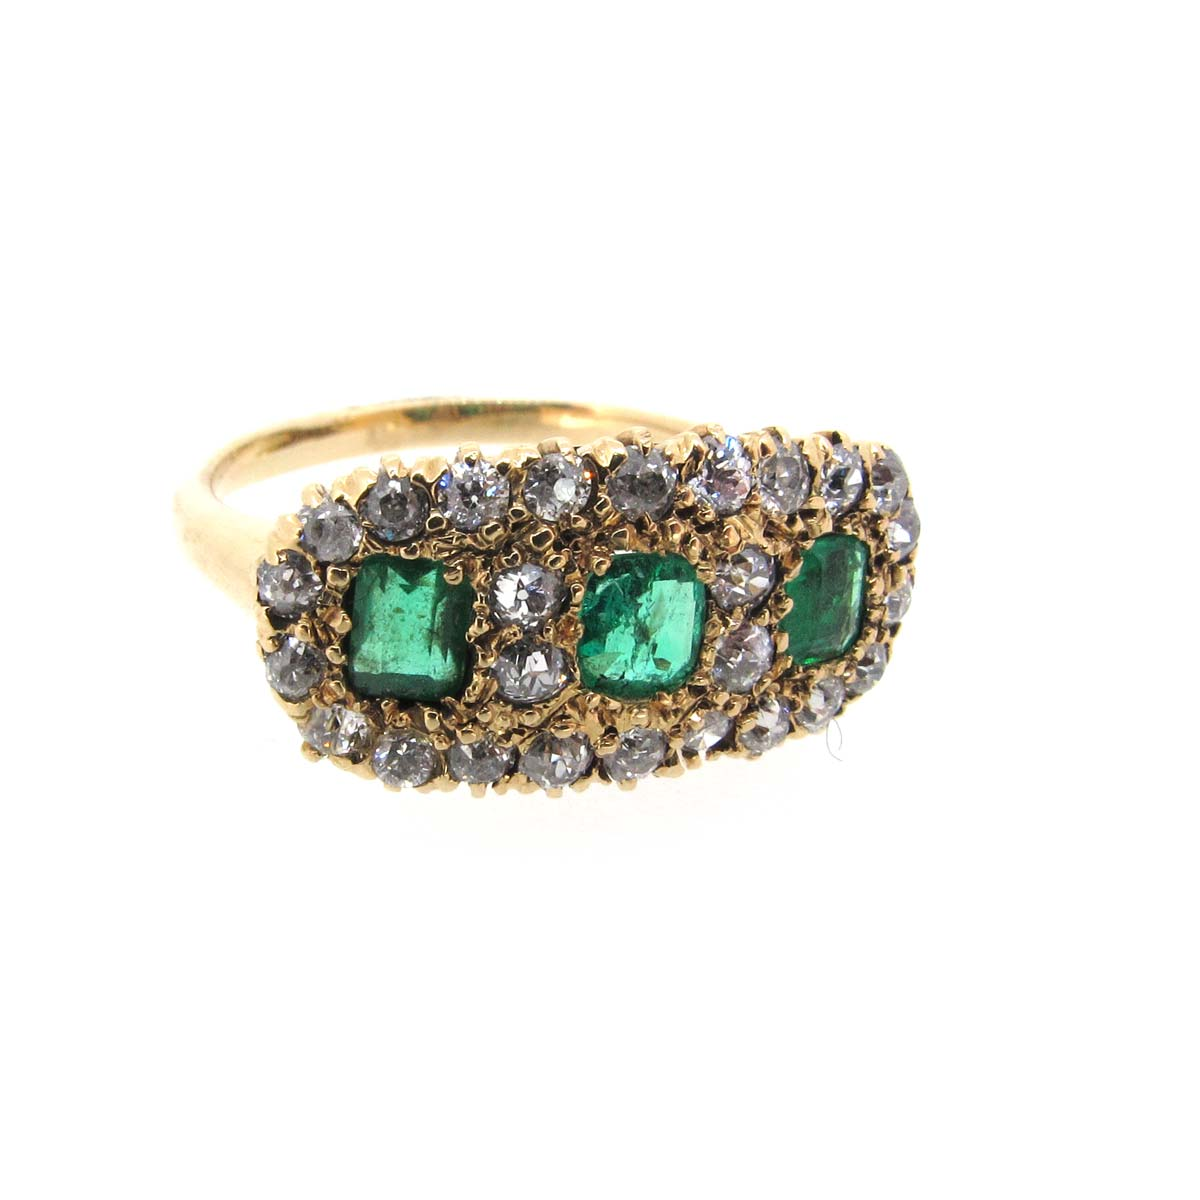 Emerald & diamond triple cluster ring